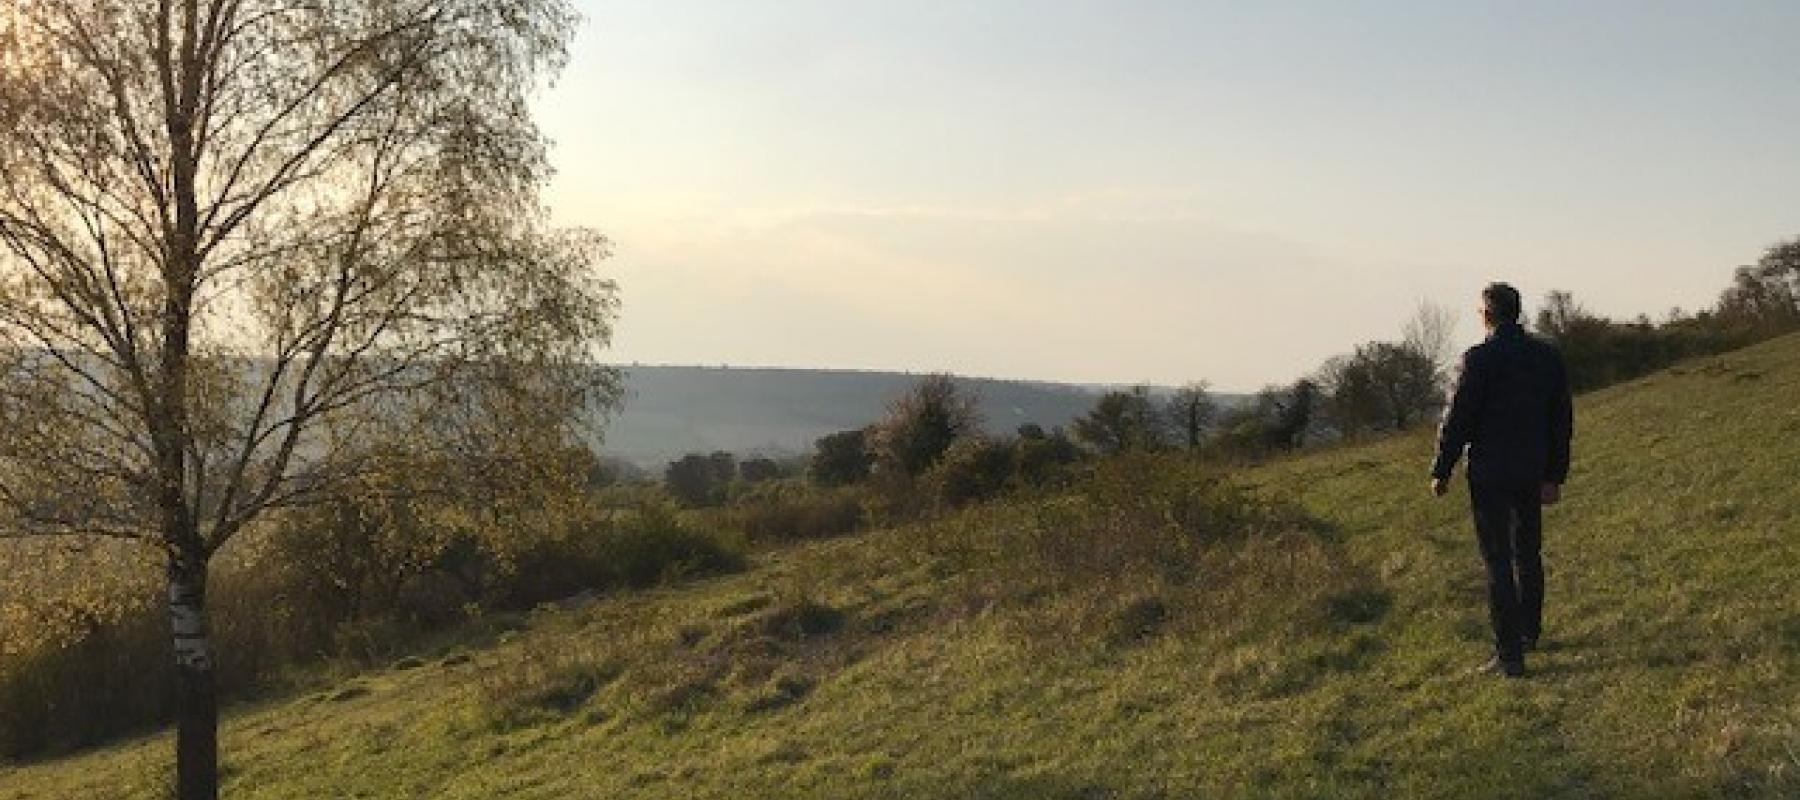 Darent Valley countryside